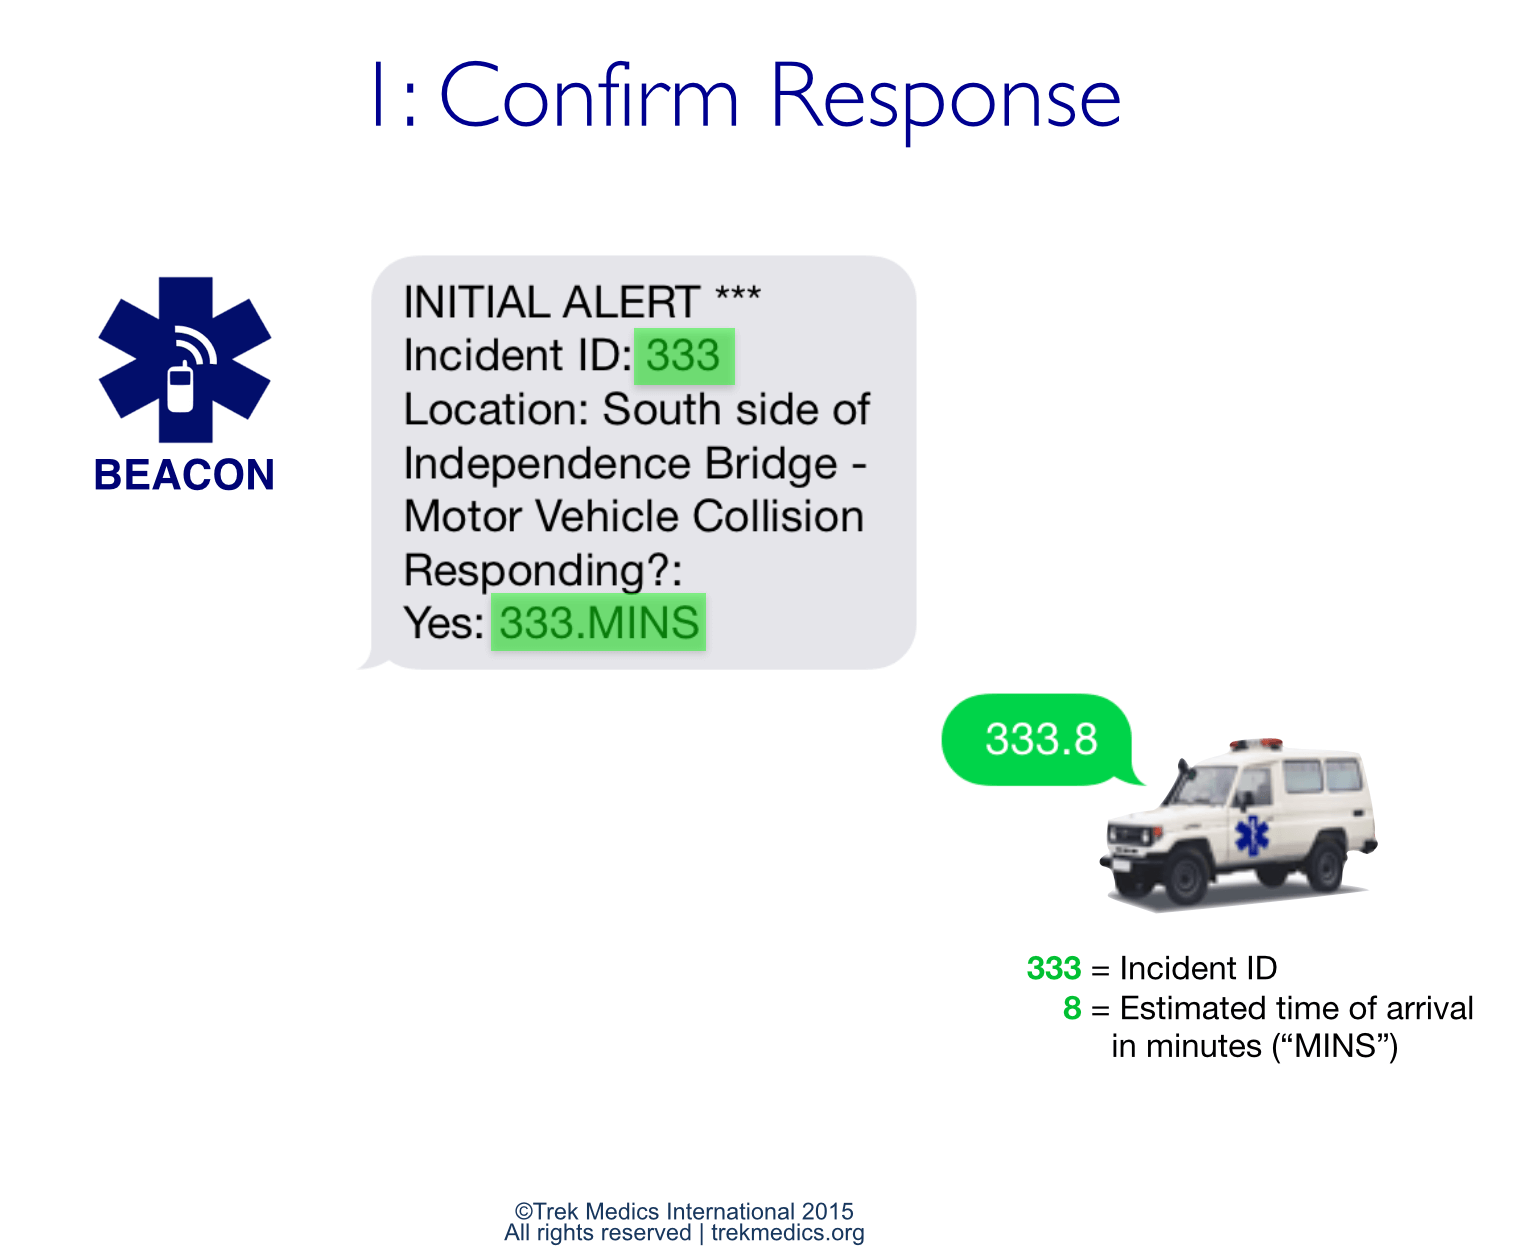 Beacon SMS Dispatch - Initial Alert